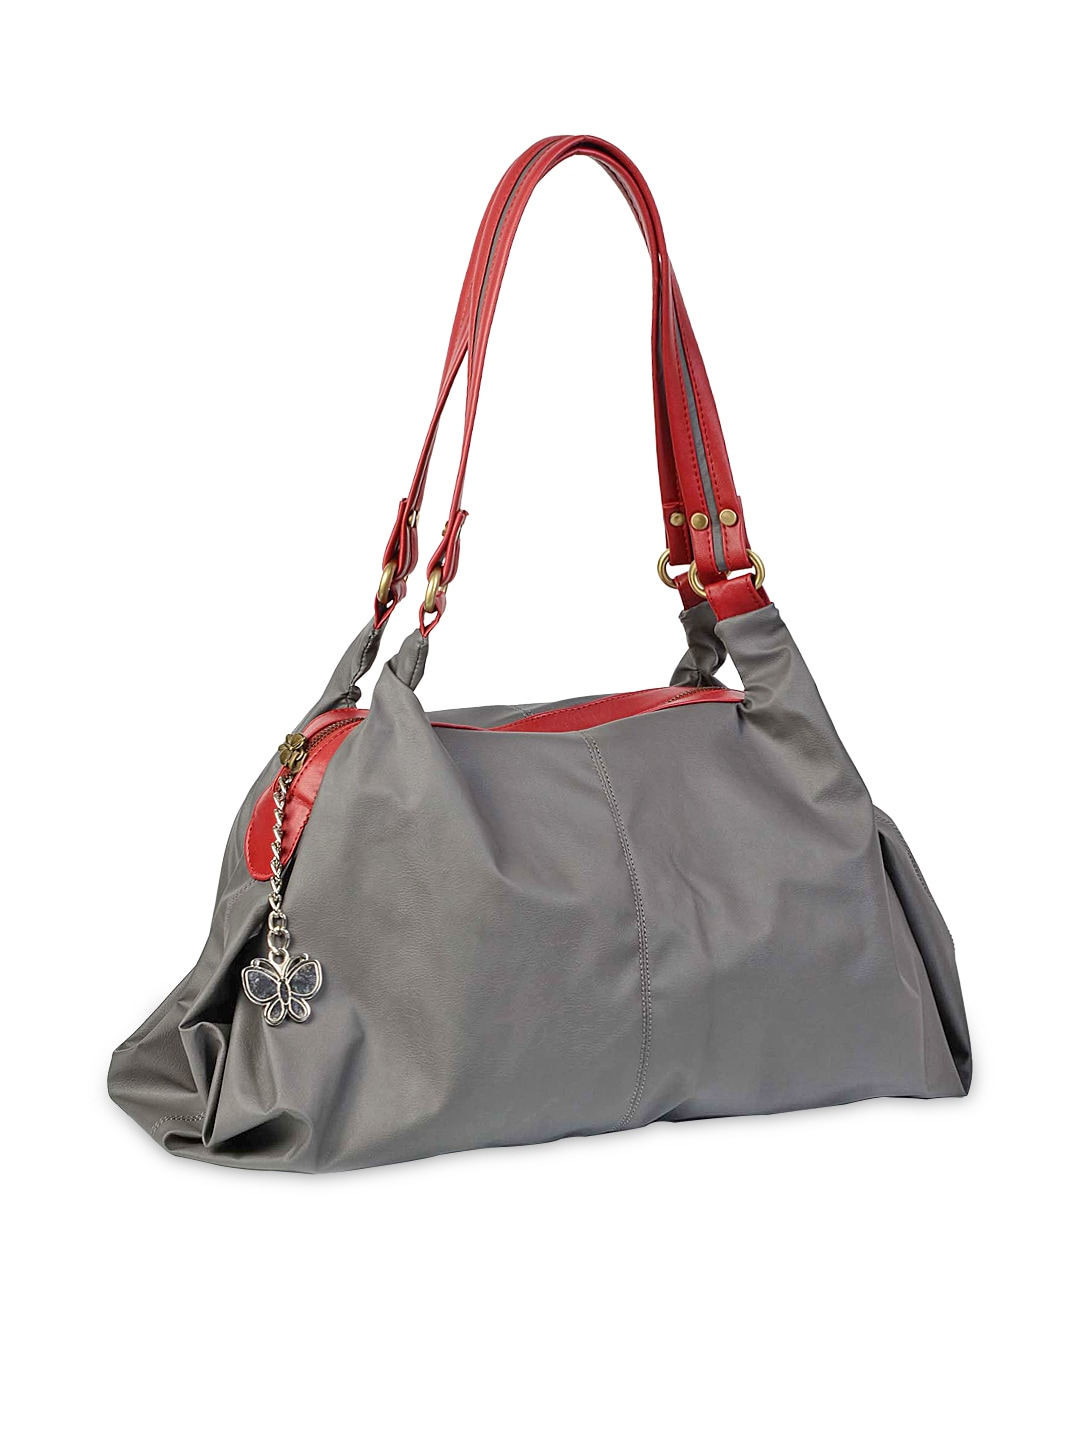 Erflies Black Cut Out Sling Bag With Chain Strap